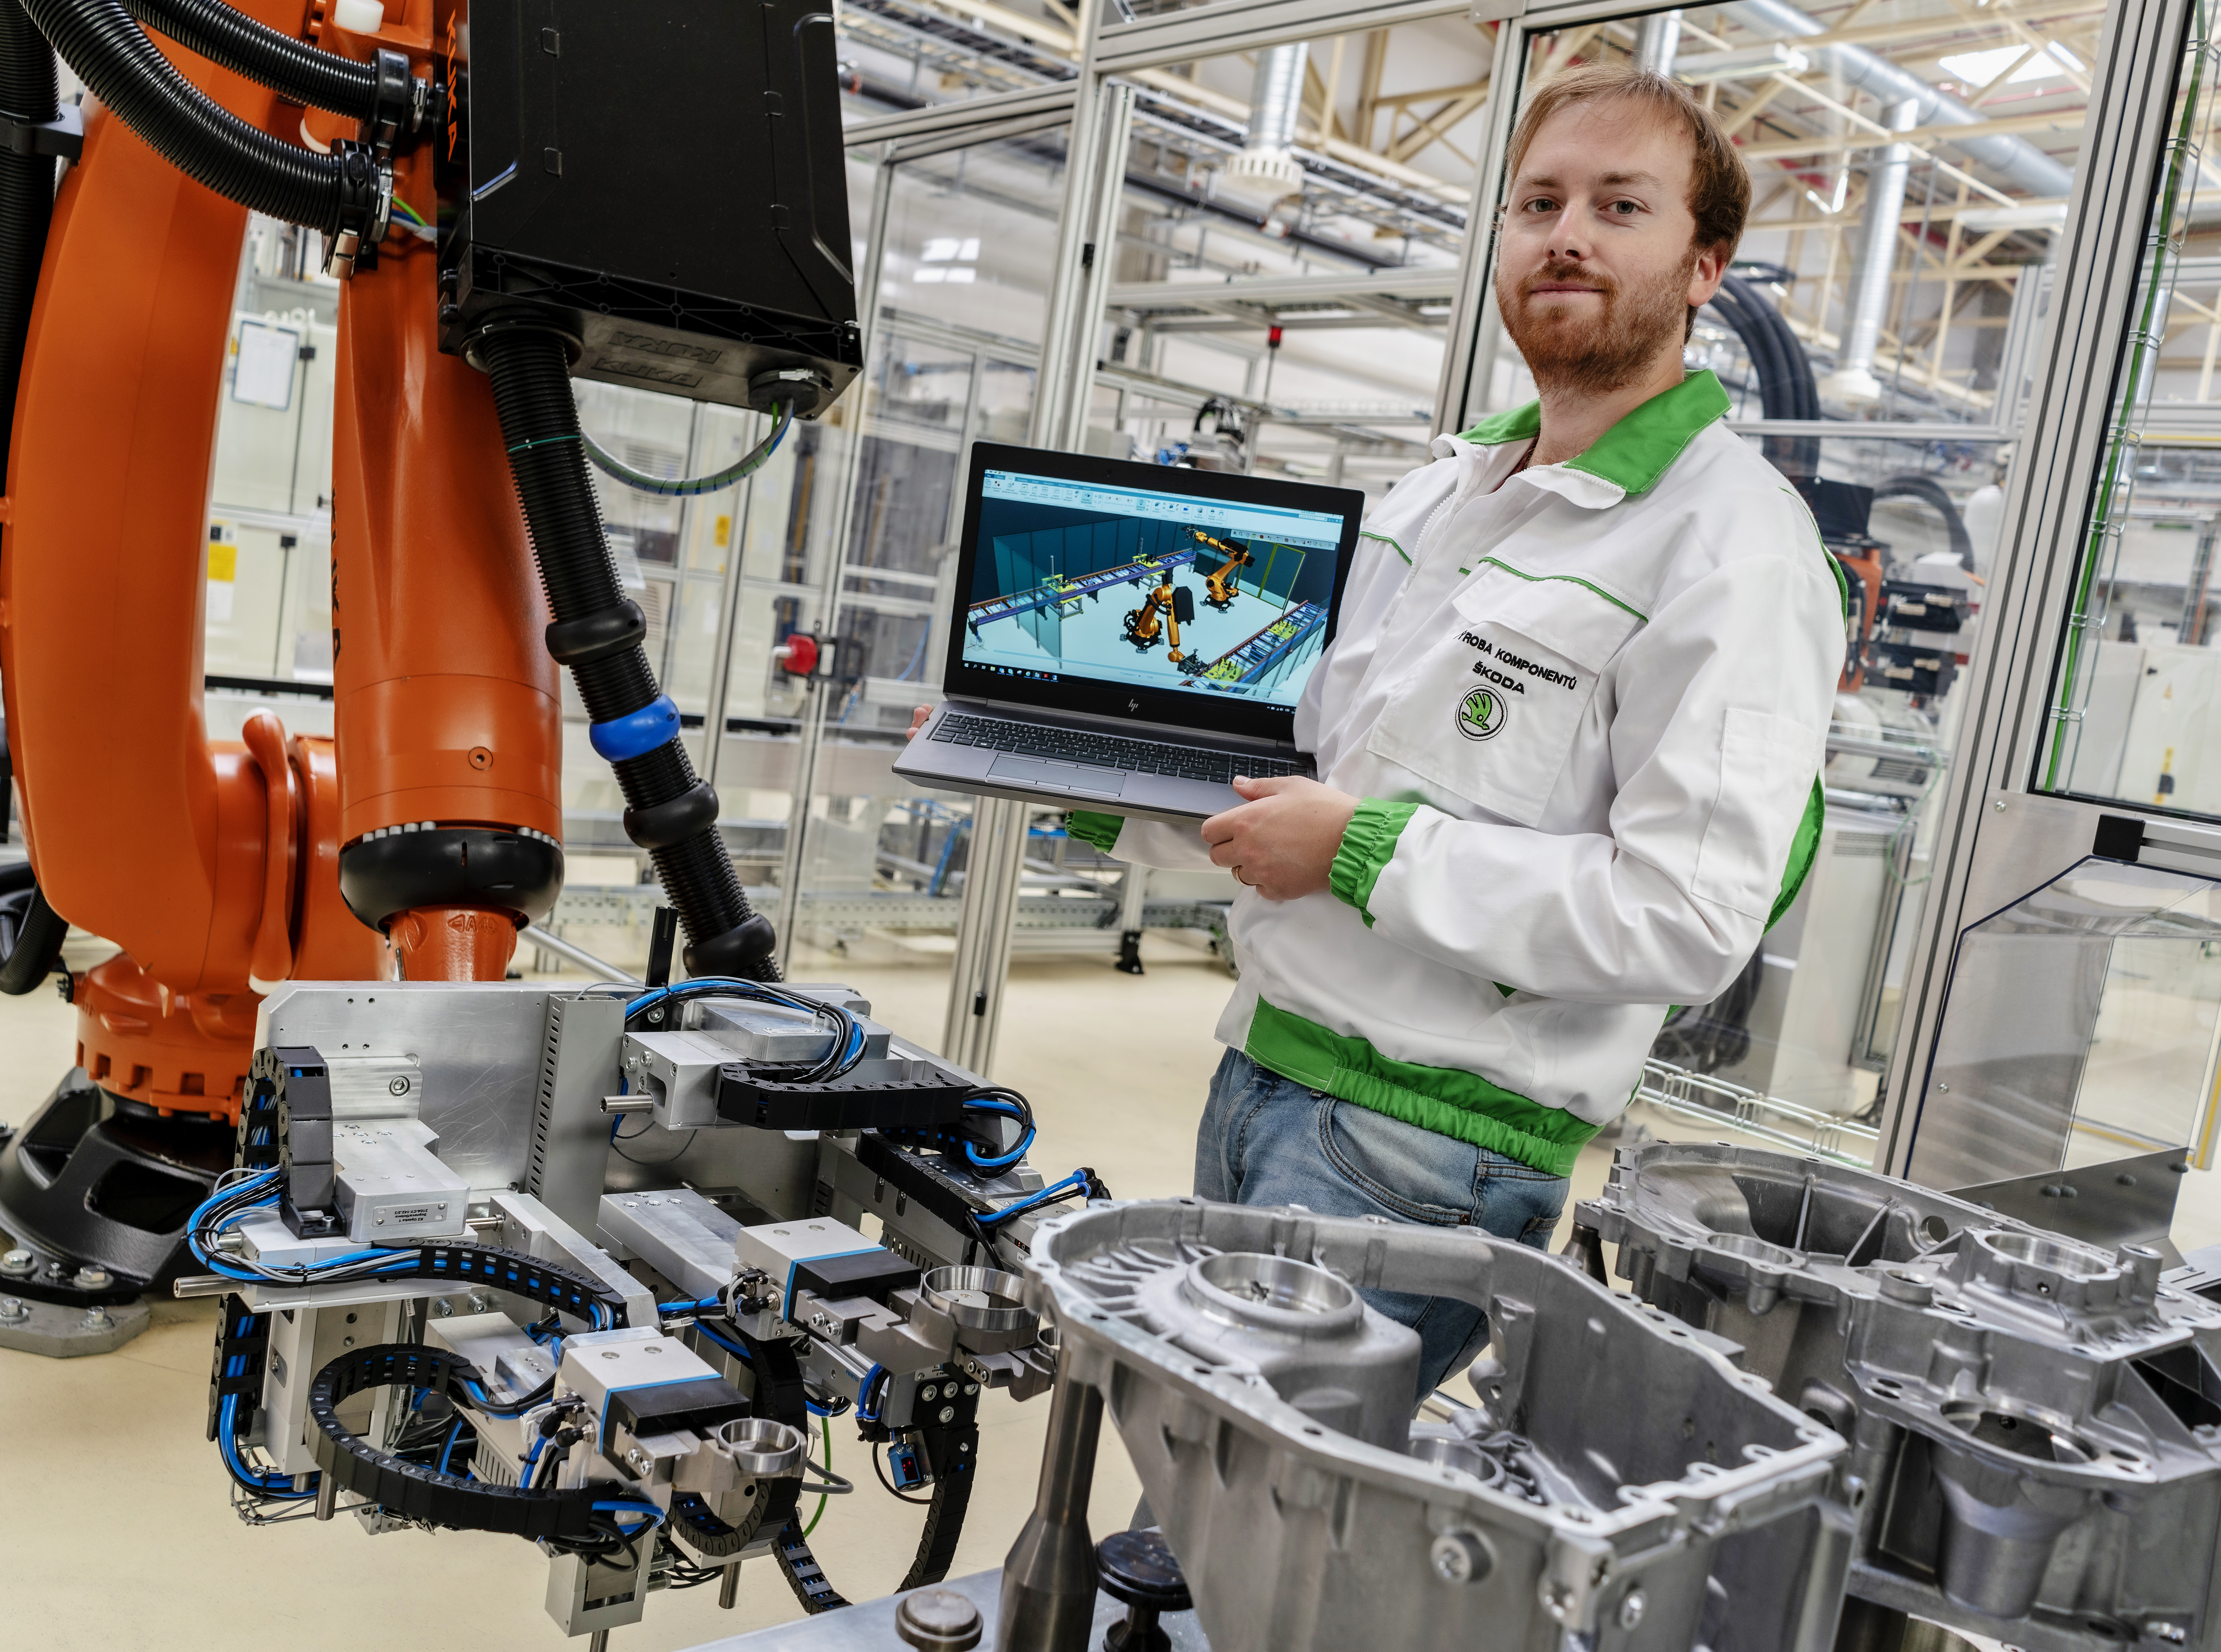 Industry 4.0: SKODA AUTO Vrchlabí plant has made use of 'Digital twin' - Image 1